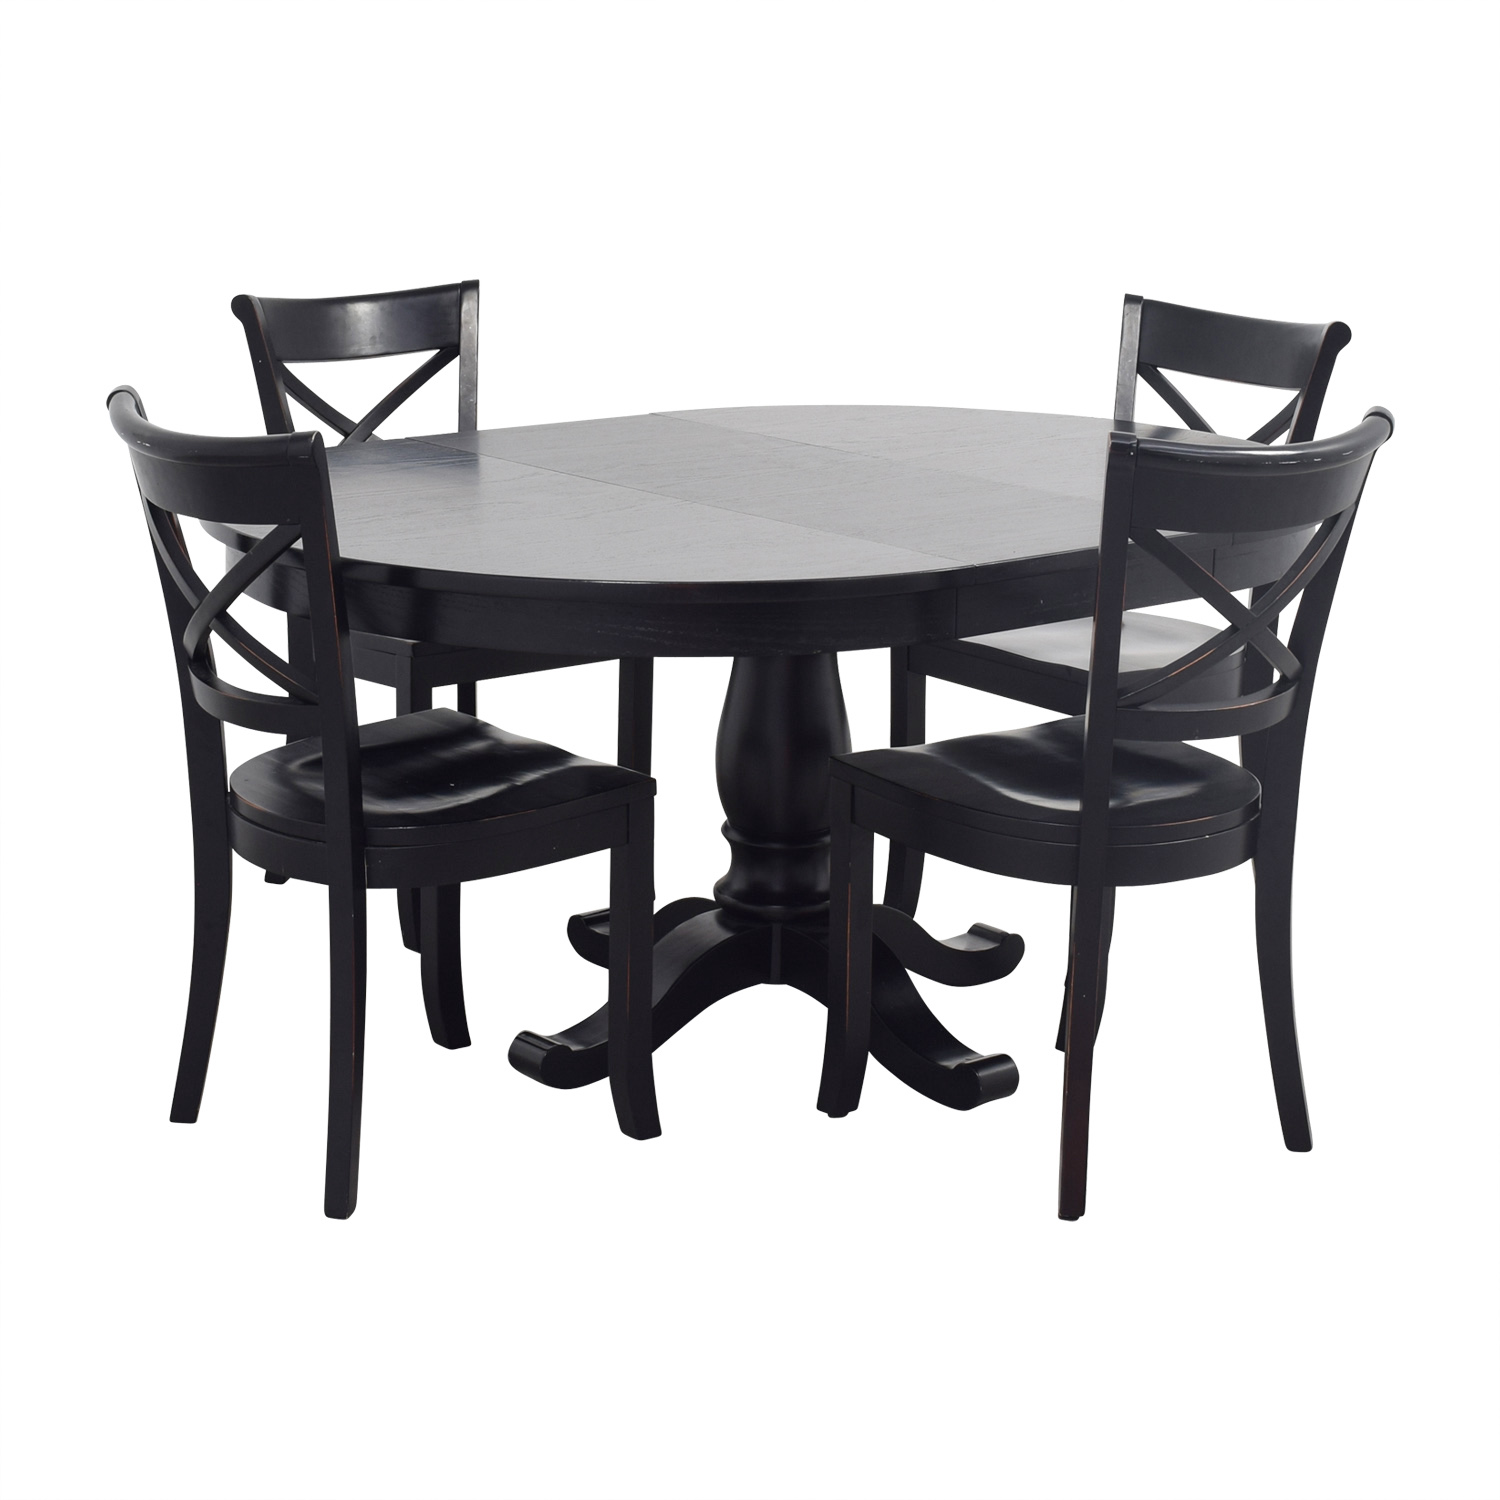 81% OFF - Crate & Barrel Crate & Barrel Avalon Black Dining Set / Tables